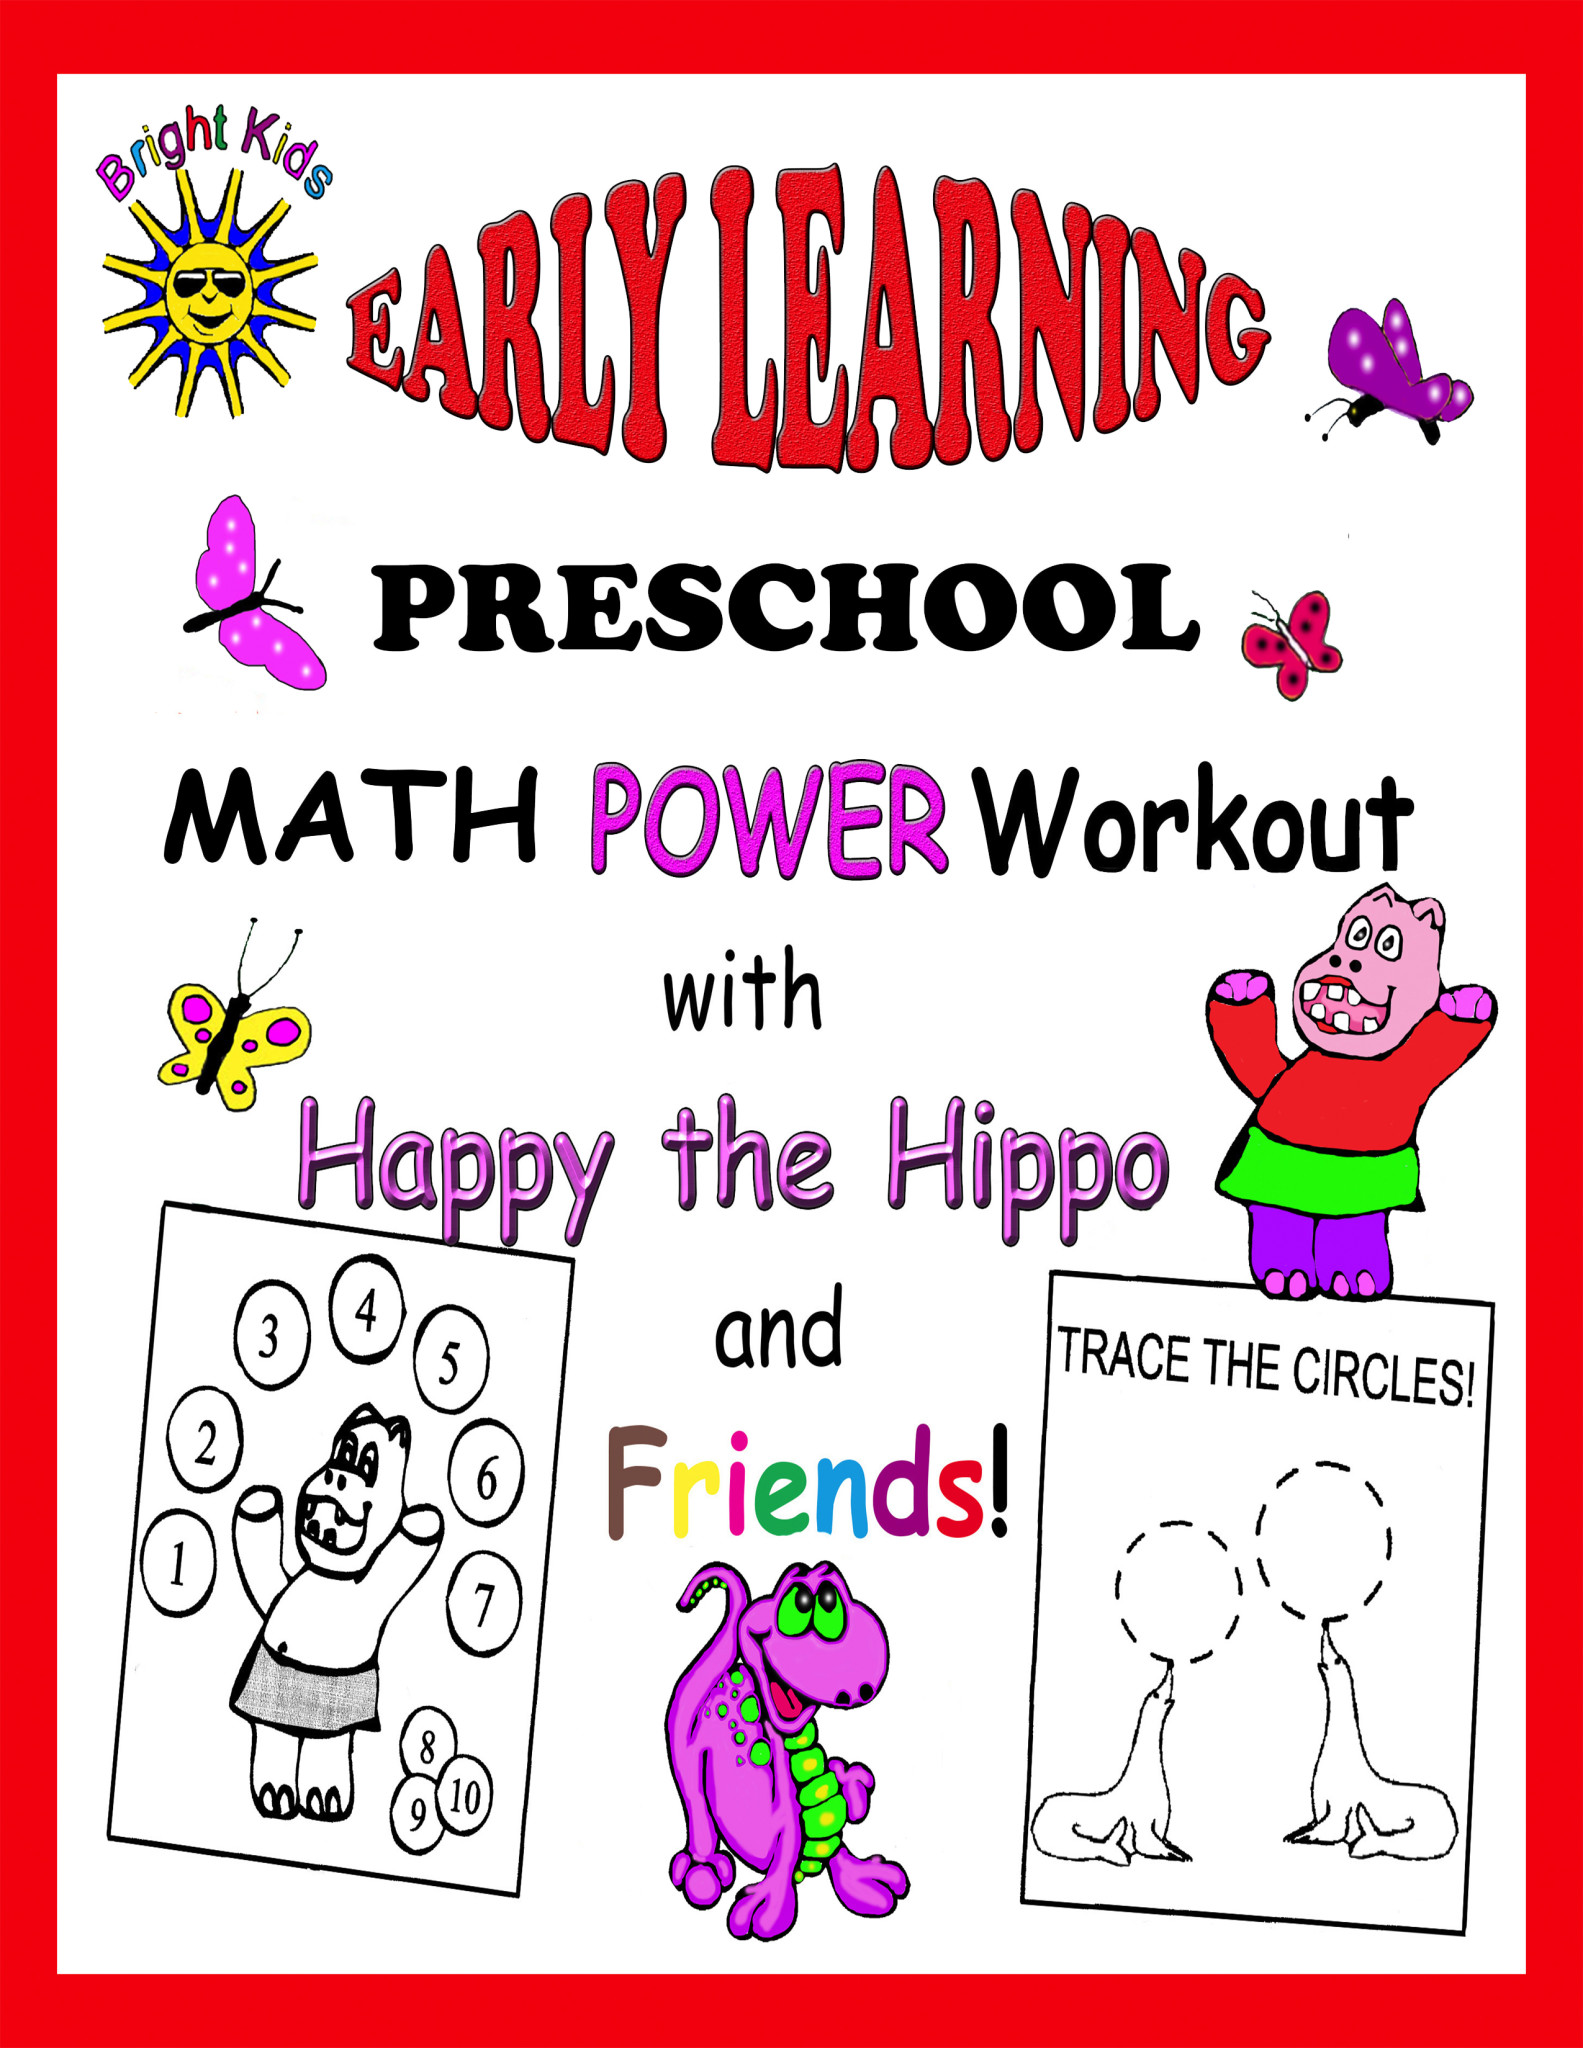 Preschool MATH Power Workout!